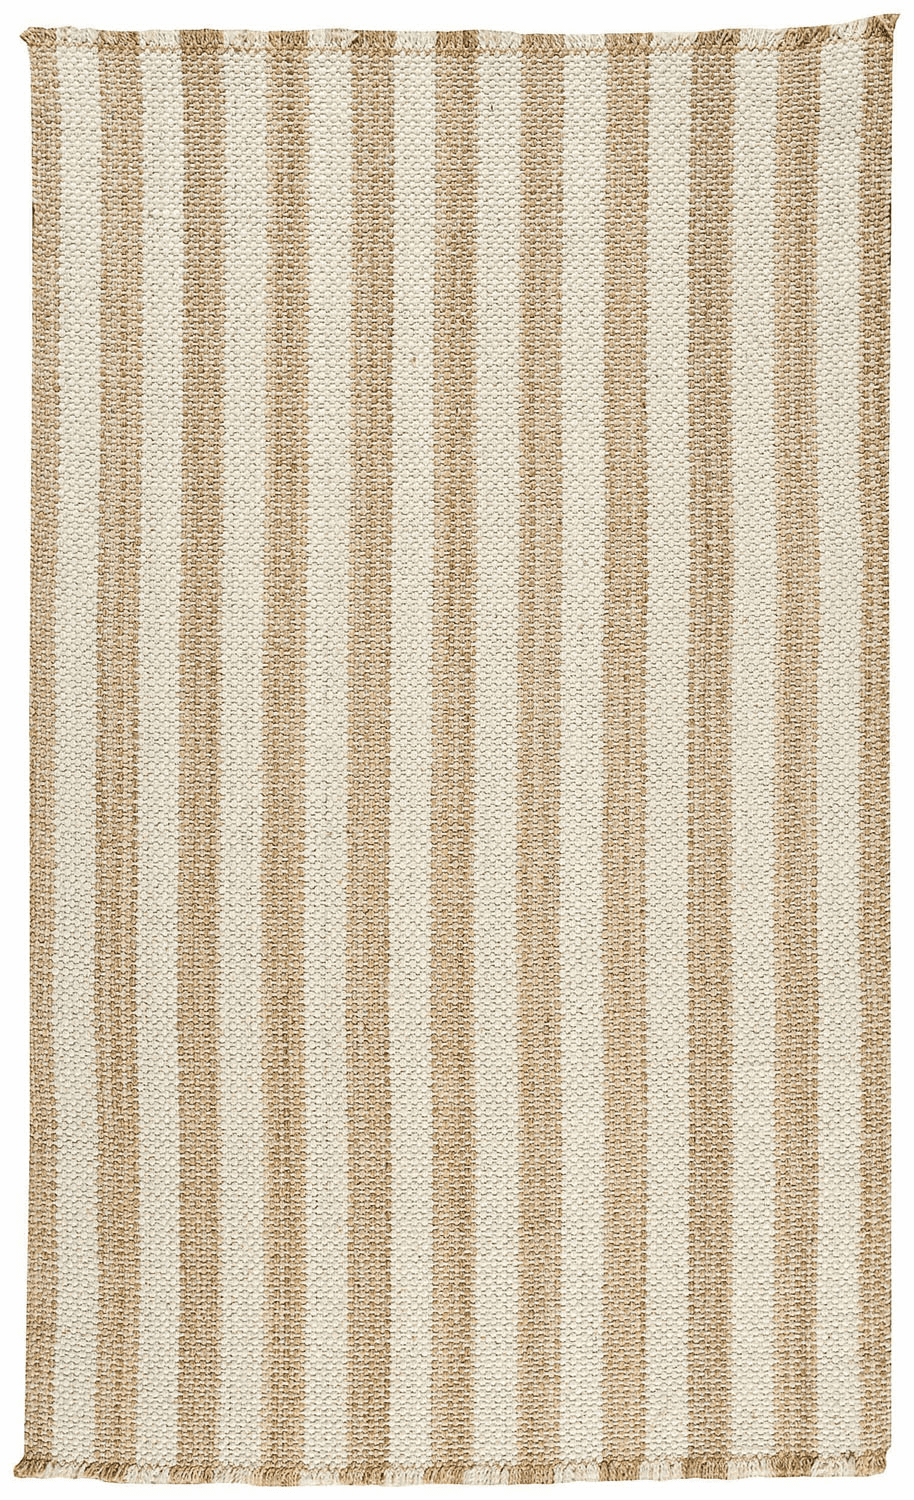 Flat Woven Tan and White Rug